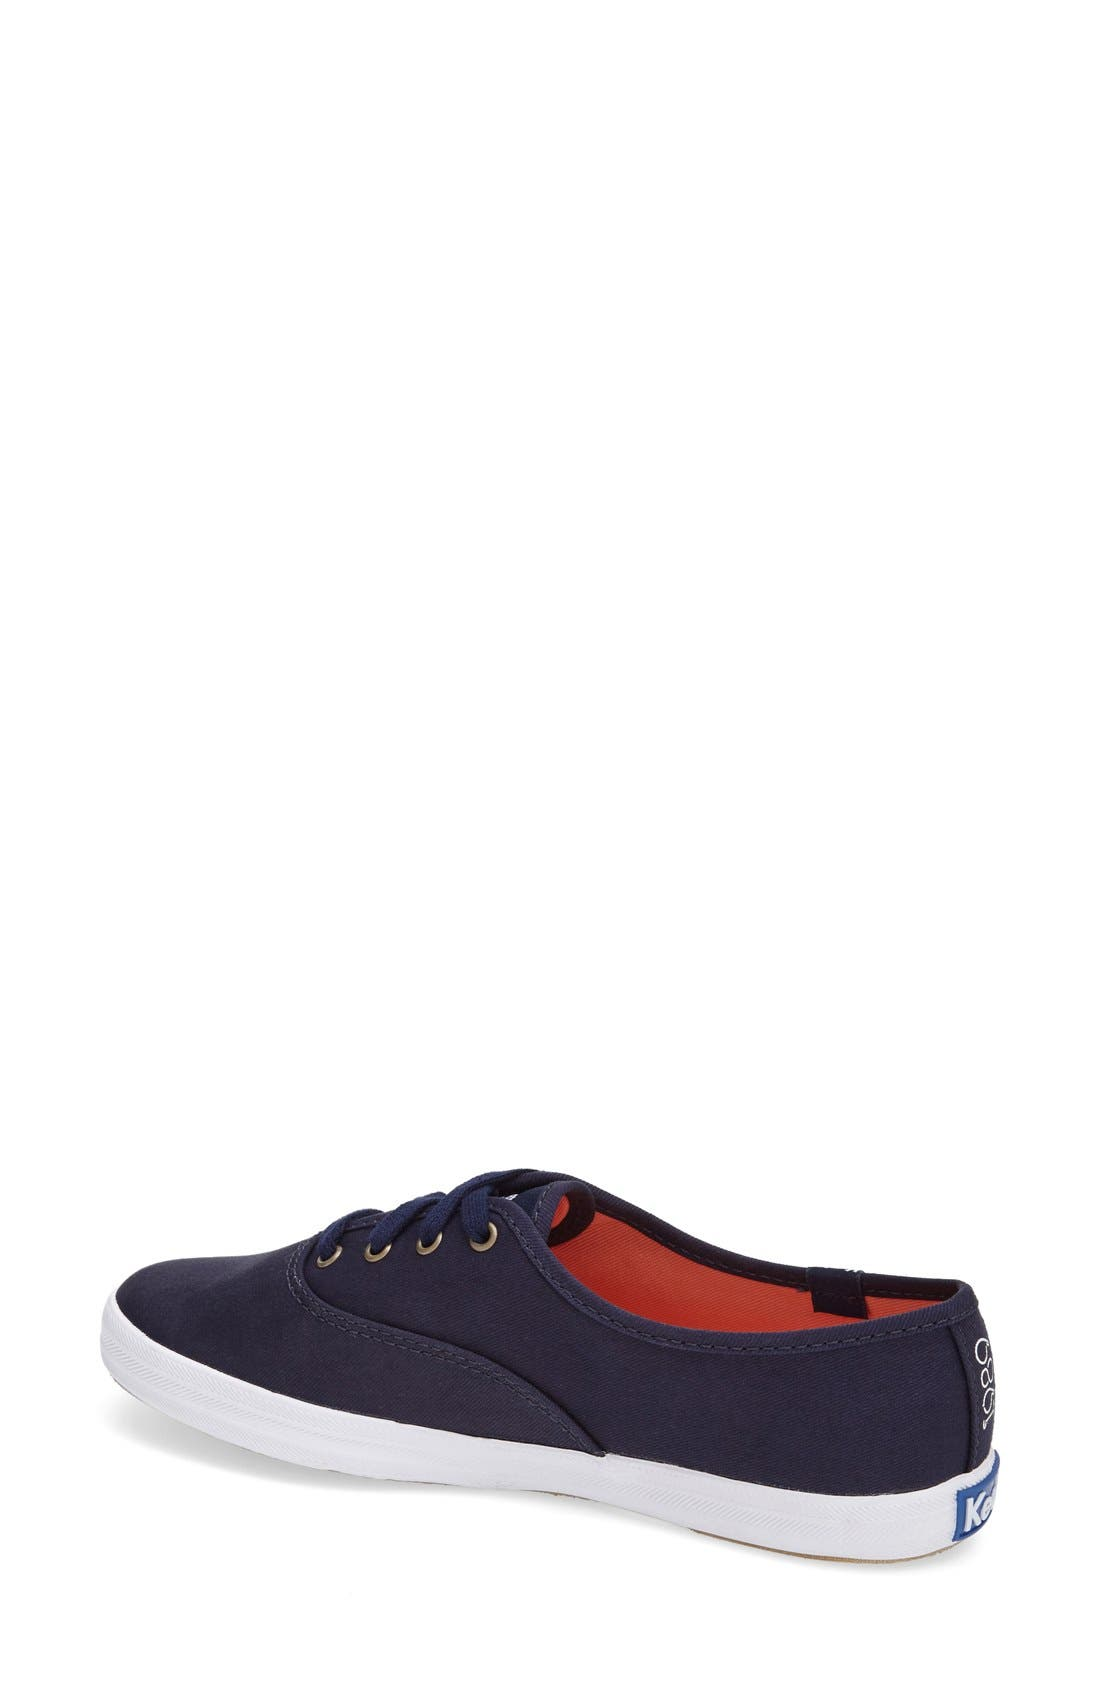 KEDS<SUP>®</SUP>, Taylor Swift 'Champion - NYC' Sneaker, Alternate thumbnail 4, color, 400